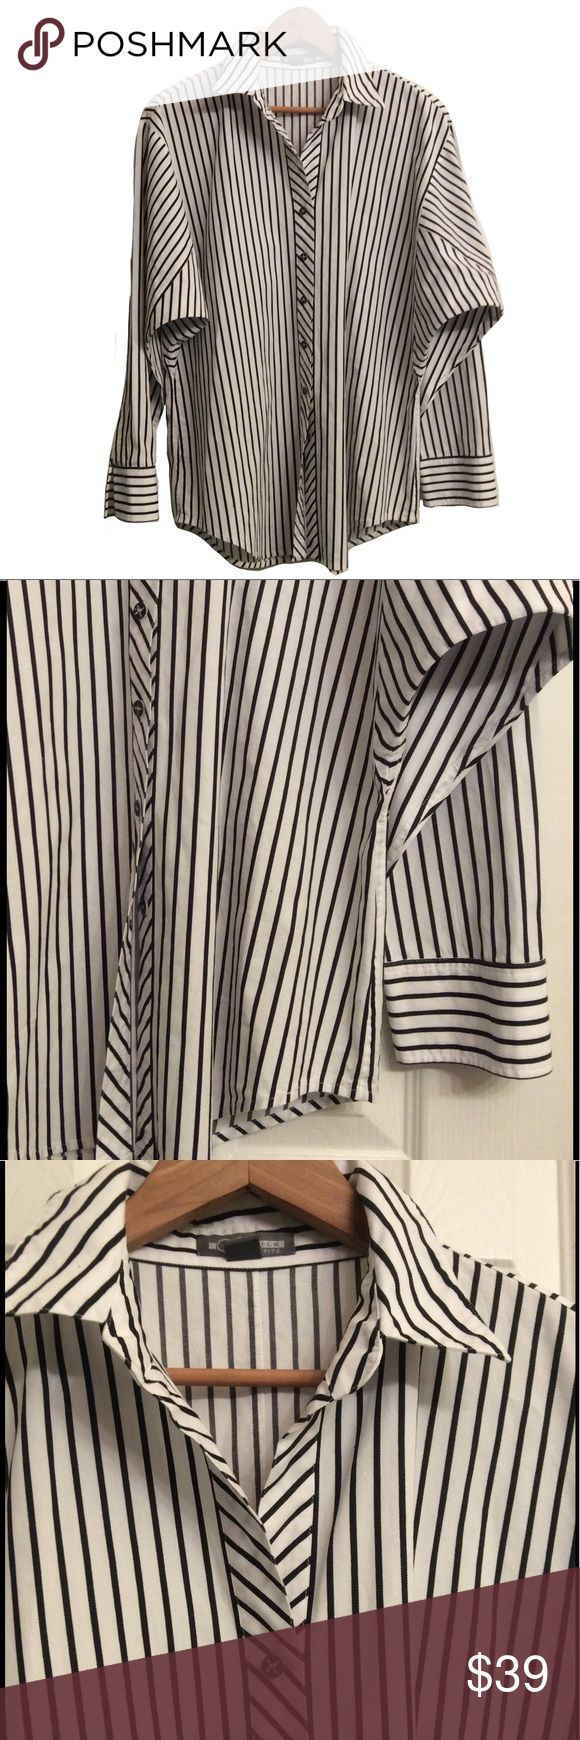 GO Silk NWOT skinny stripped big shirt This is a gorgeous tunic blouse with intricate detailing, notice interesting positioning of stripes to complement the figure, unique buttons, very elegant 😍 100% cotton, PETITE LARGE, 29 inches long,  23/46 inches  approximately between armpits, 22/44 below, 22 inches sleeves, sold at Neiman's currently on sale for $125 GO SILK Tops Tunics